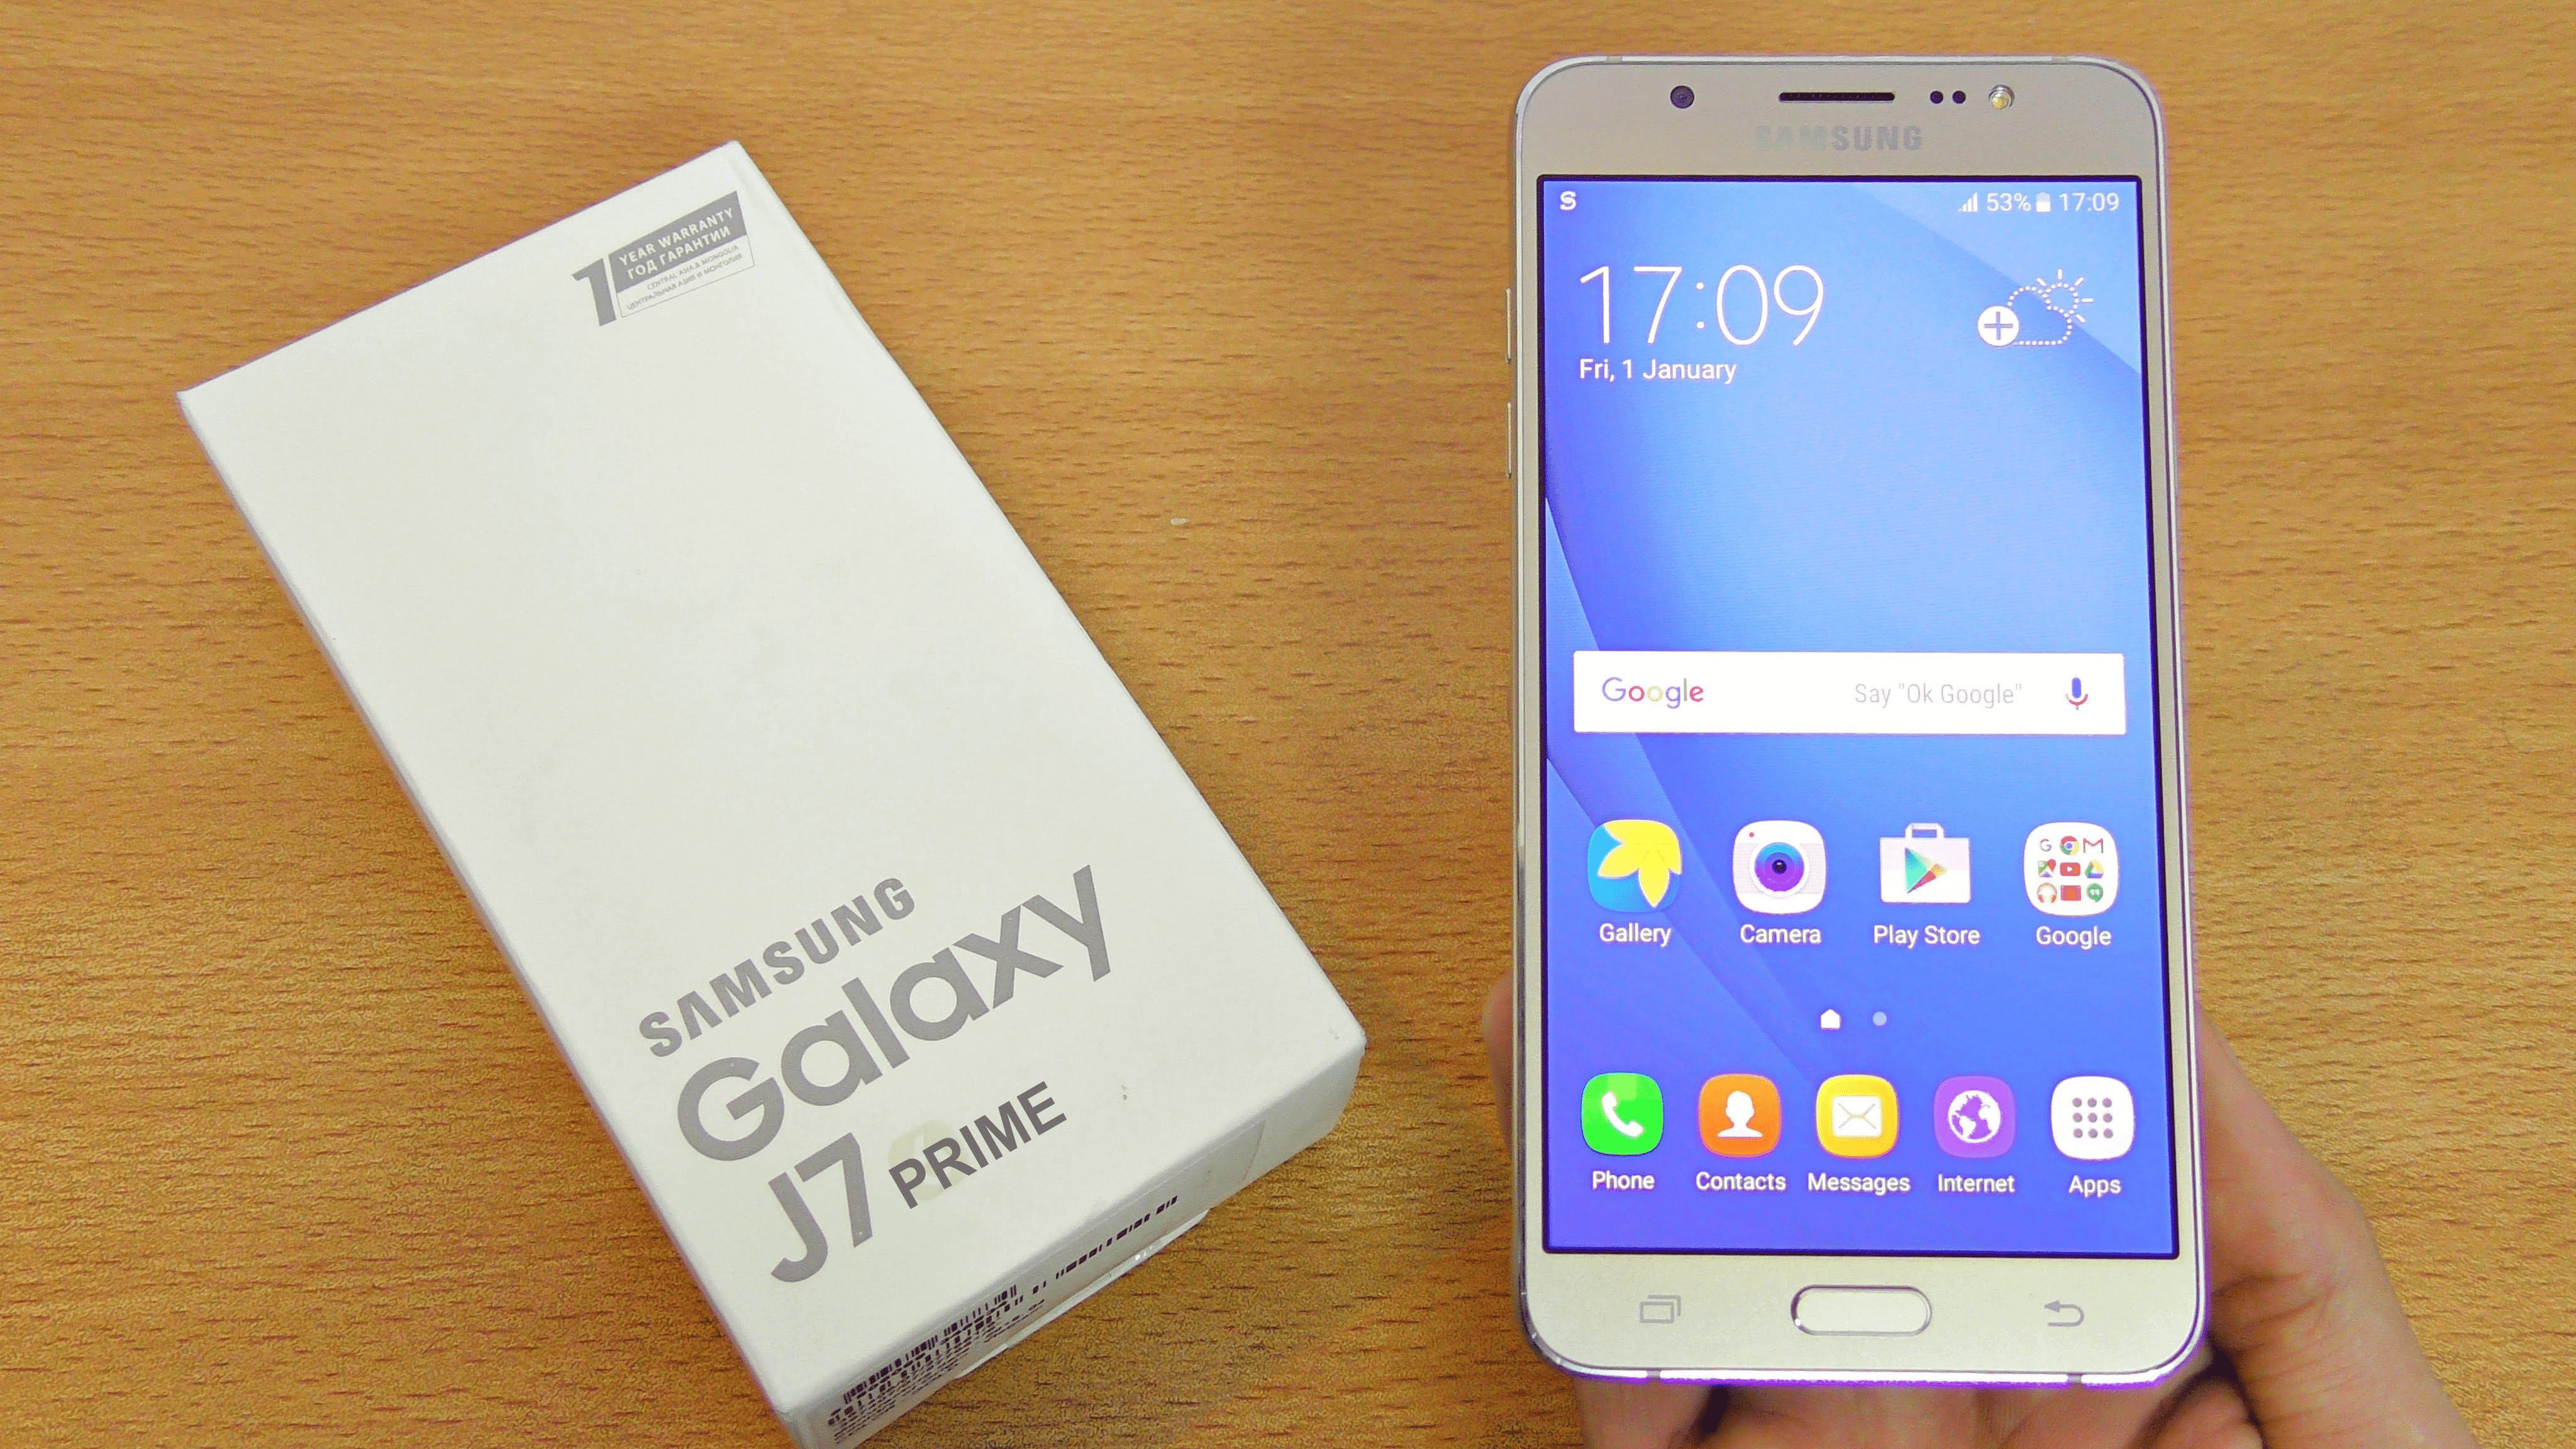 Install XXU1AQE4 Android 6.0.1 Marshmallow on Samsung Galaxy J7 Prime 1